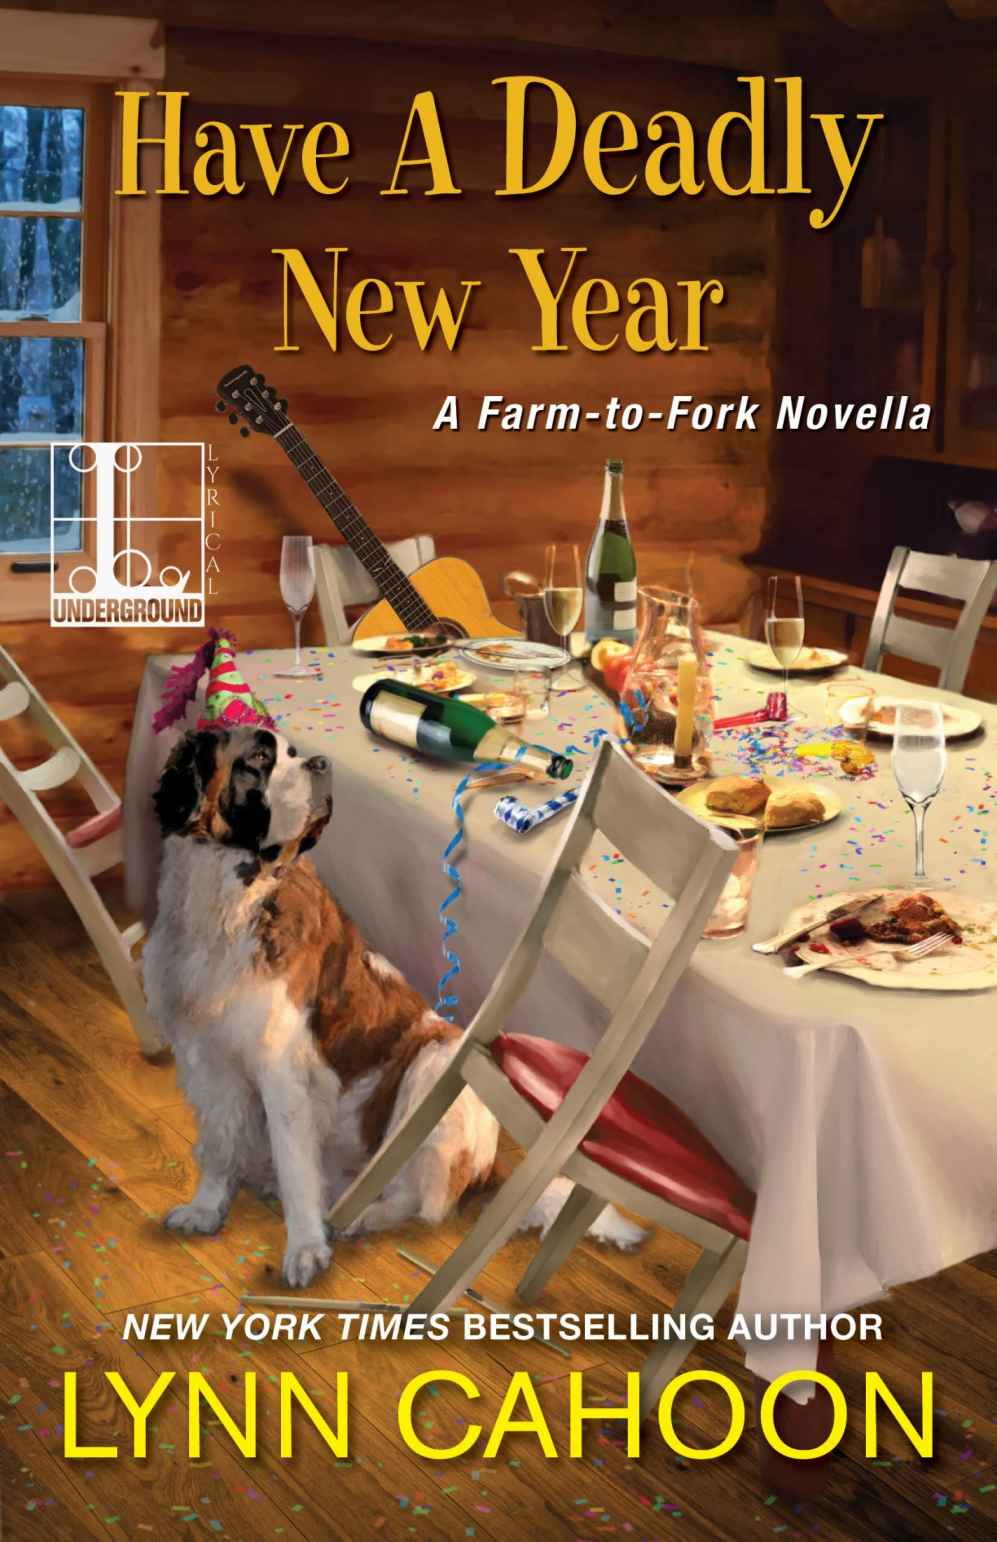 Have a Deadly New Year (Farm-to-Fork Mystery #4)